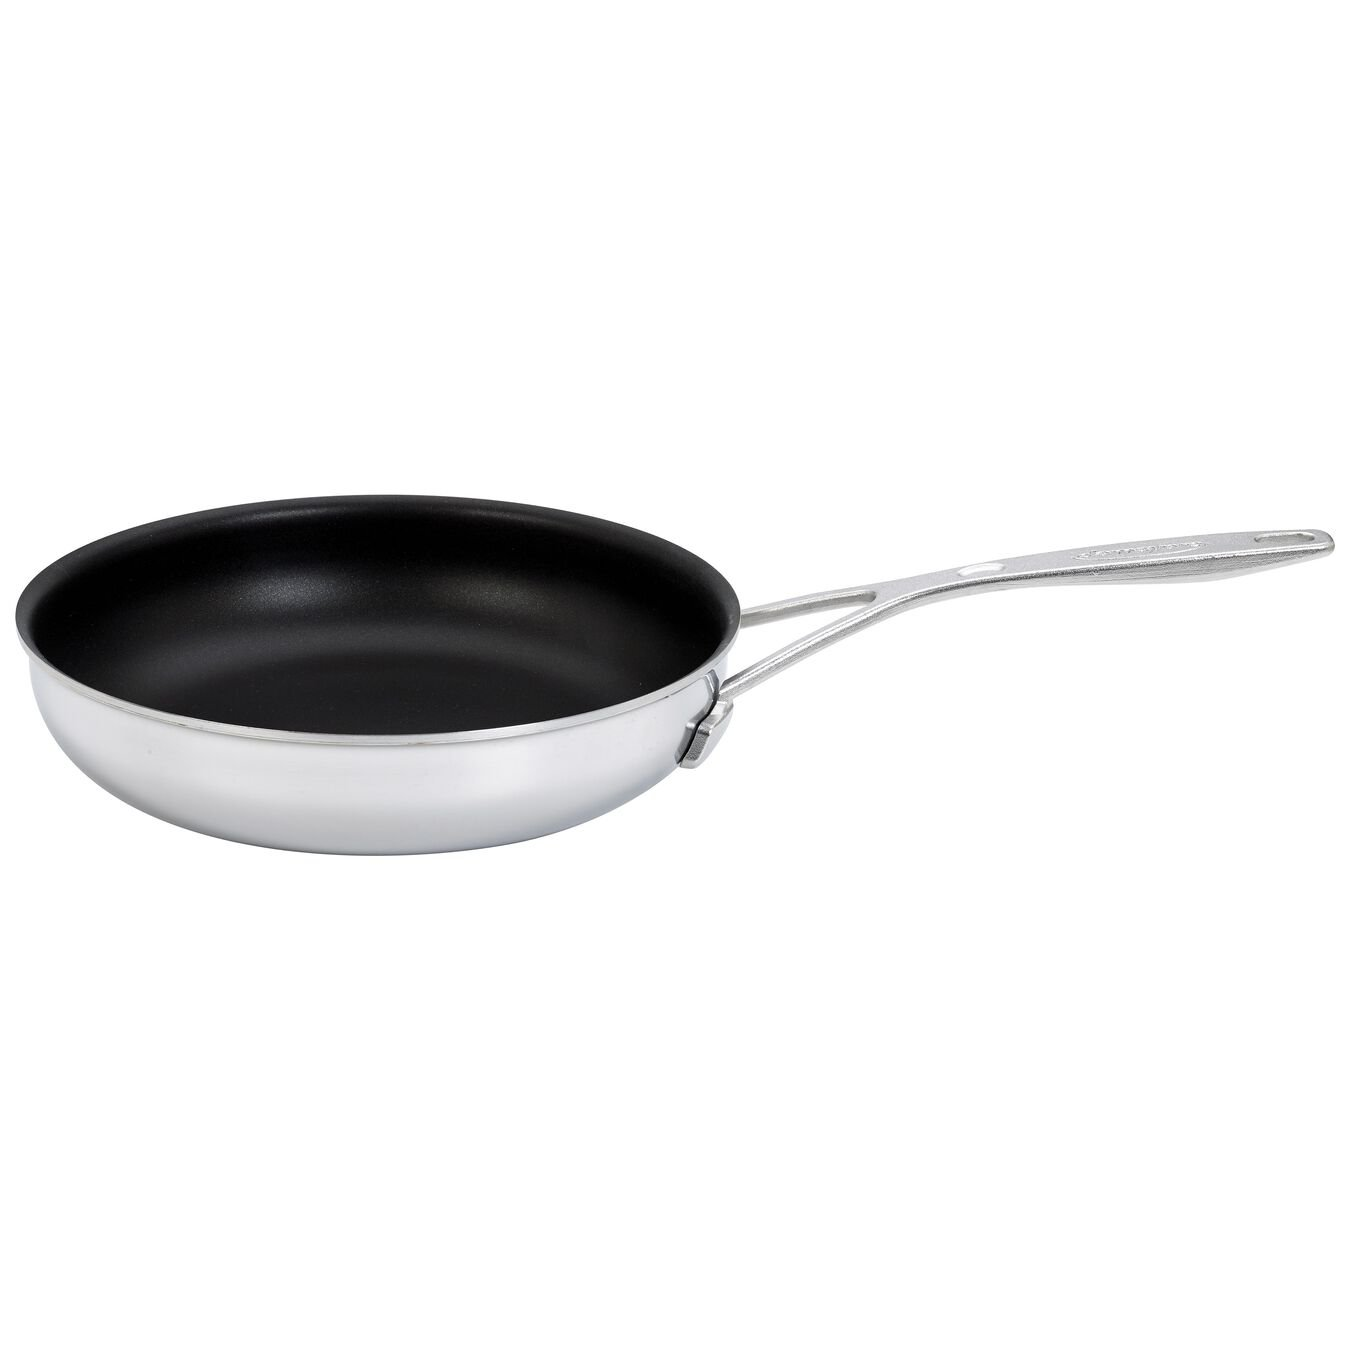 8-inch Stainless Steel Traditional Nonstick Fry Pan,,large 1